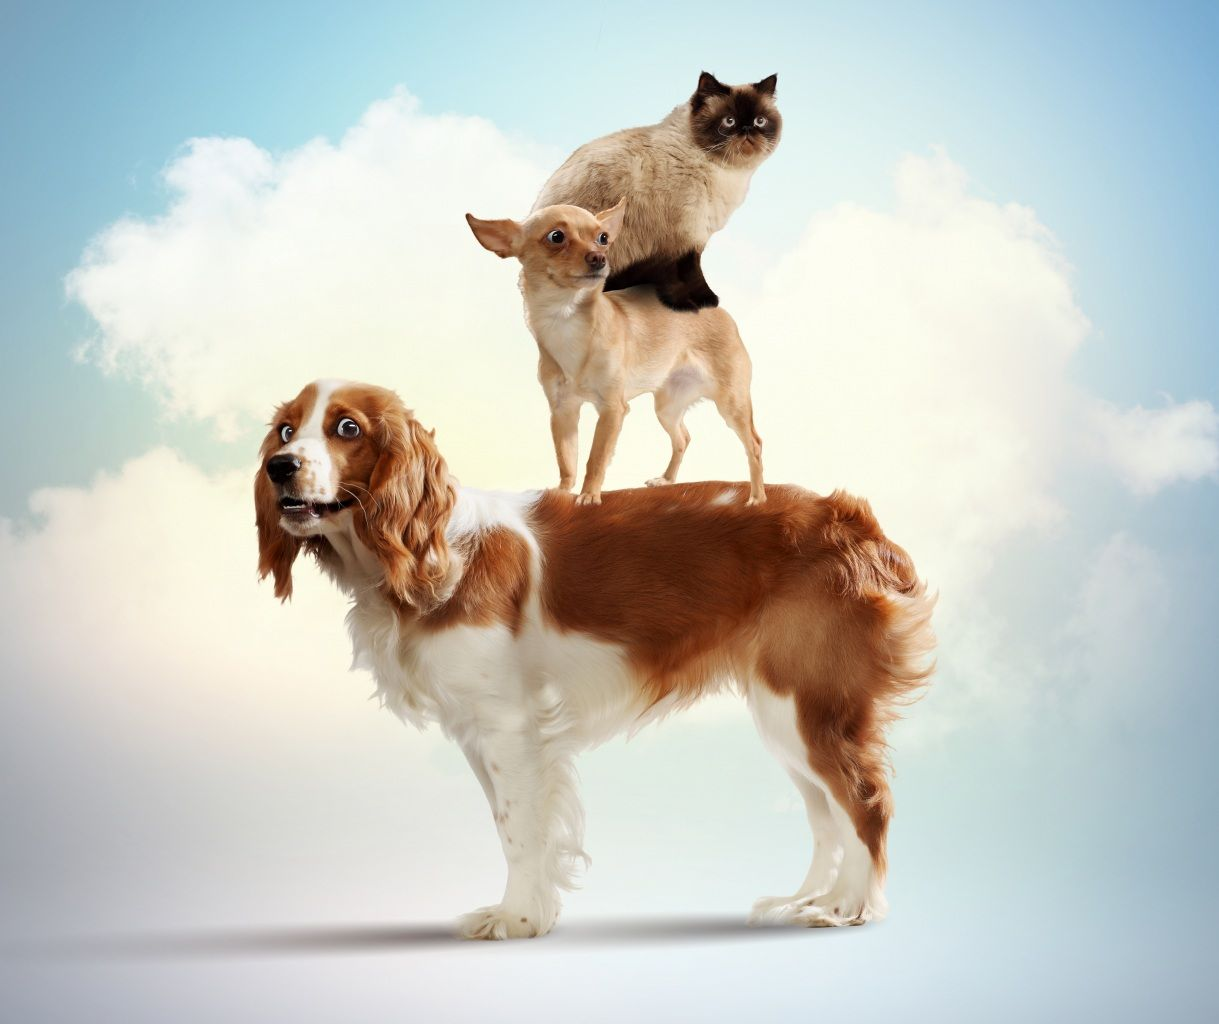 Dogs cats chihuahua three spaniel animals amazing animals